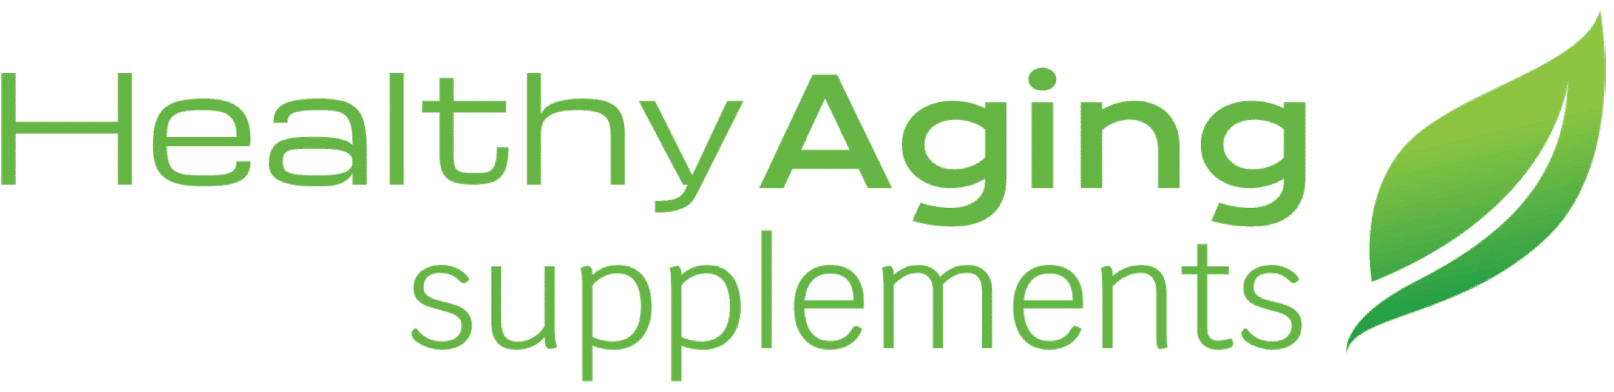 Healthy Aging Supplements